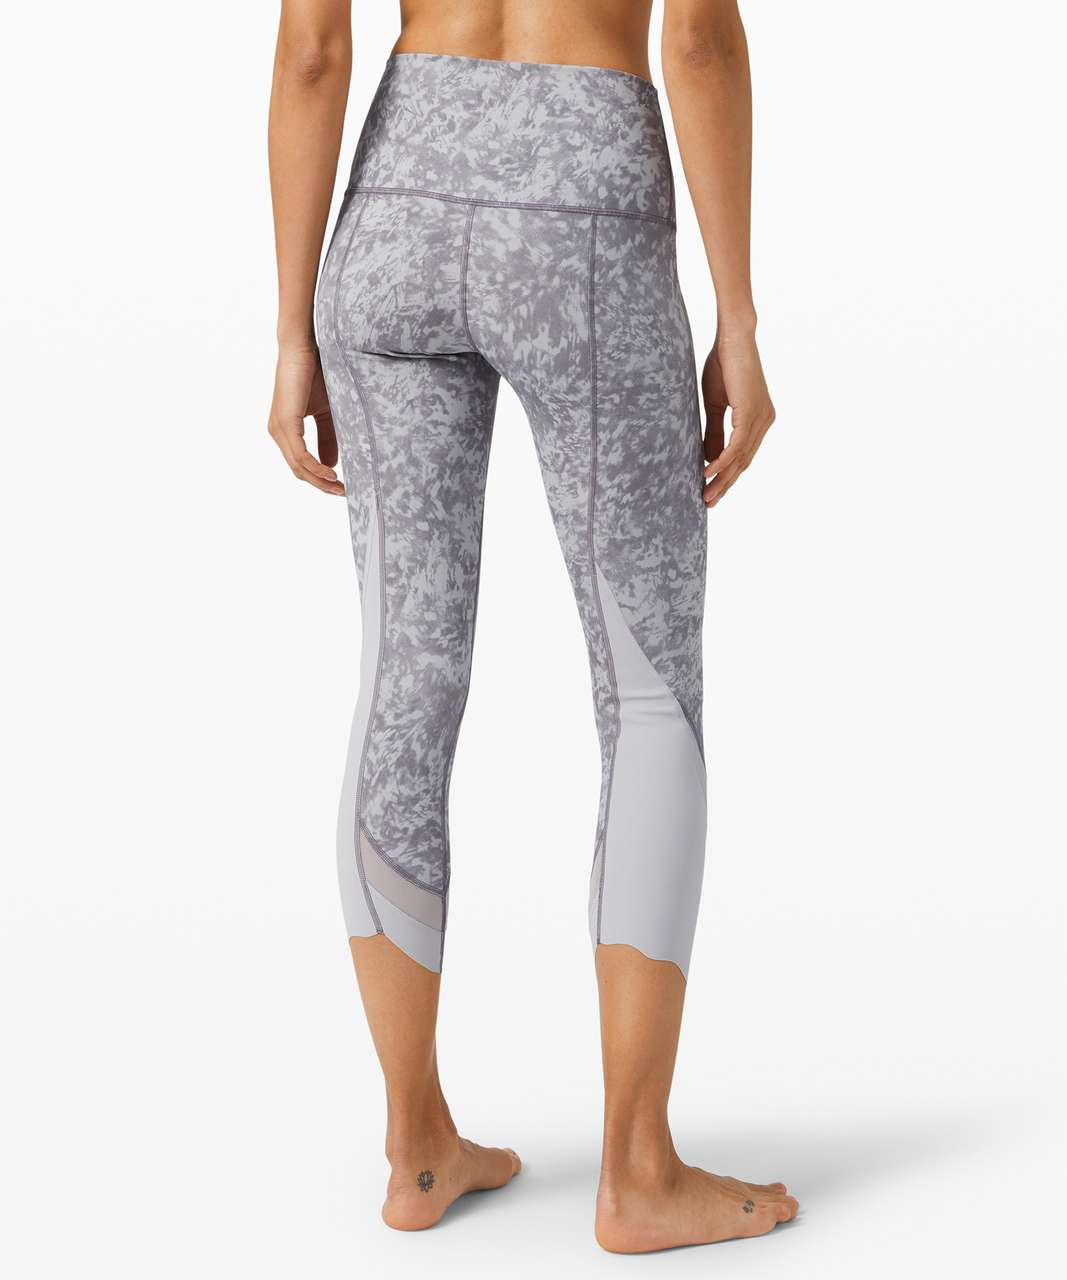 "Lululemon Wunder Under Crop High-Rise *Roll Down Scallop Luxtreme 23"" - Summer Shade Ice Grey Multi / Ice Grey"